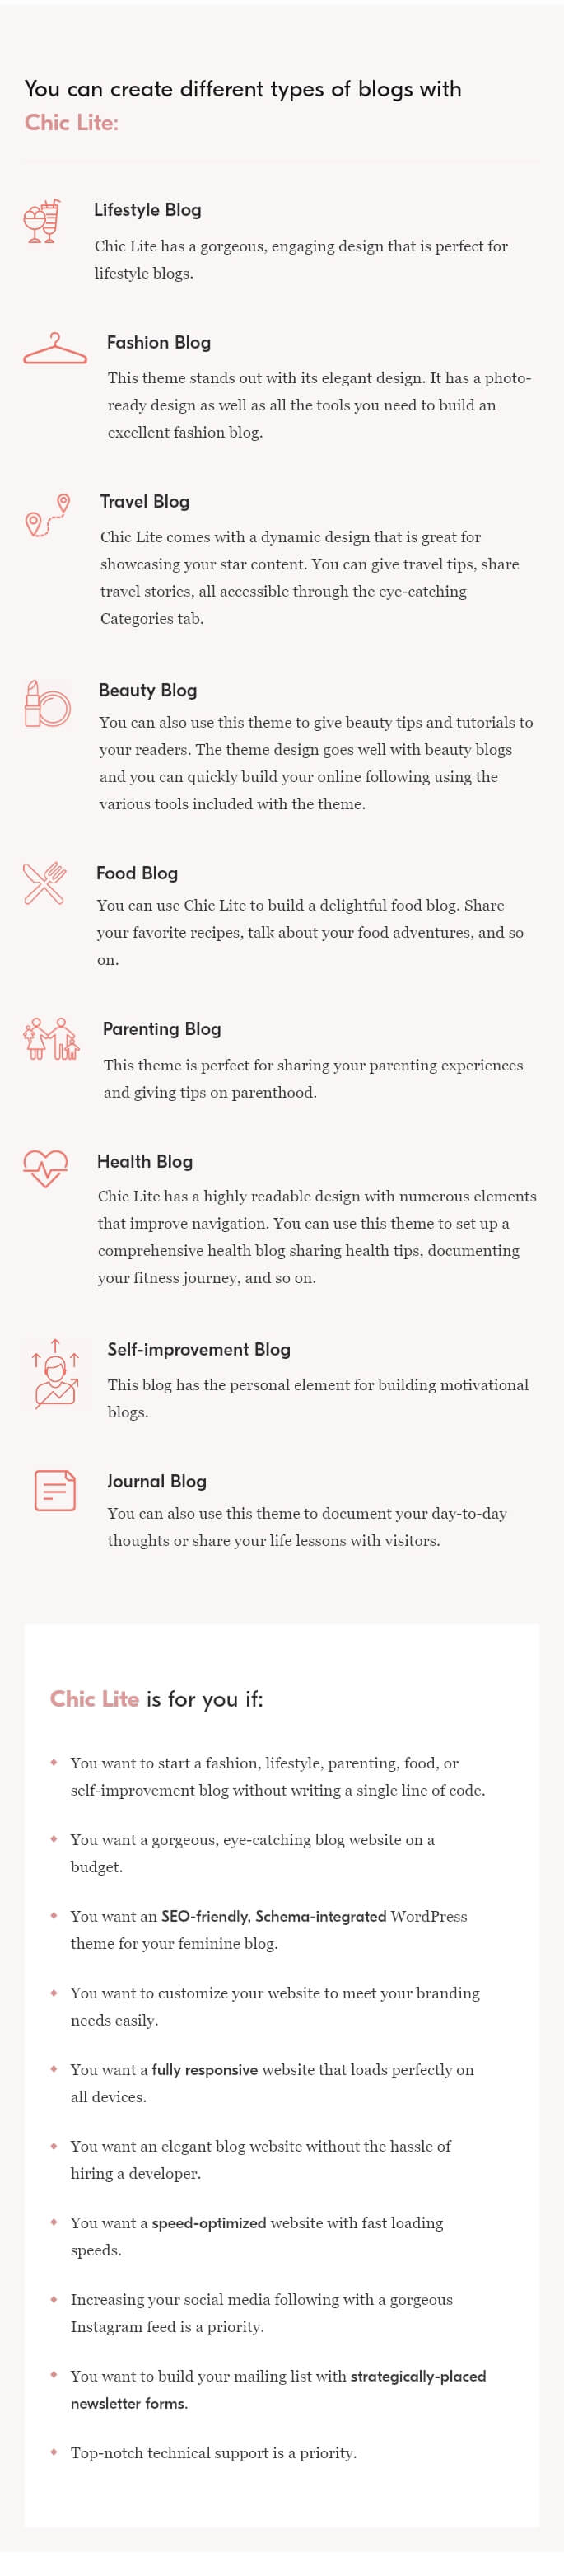 Chic Lite WordPress Theme - 2